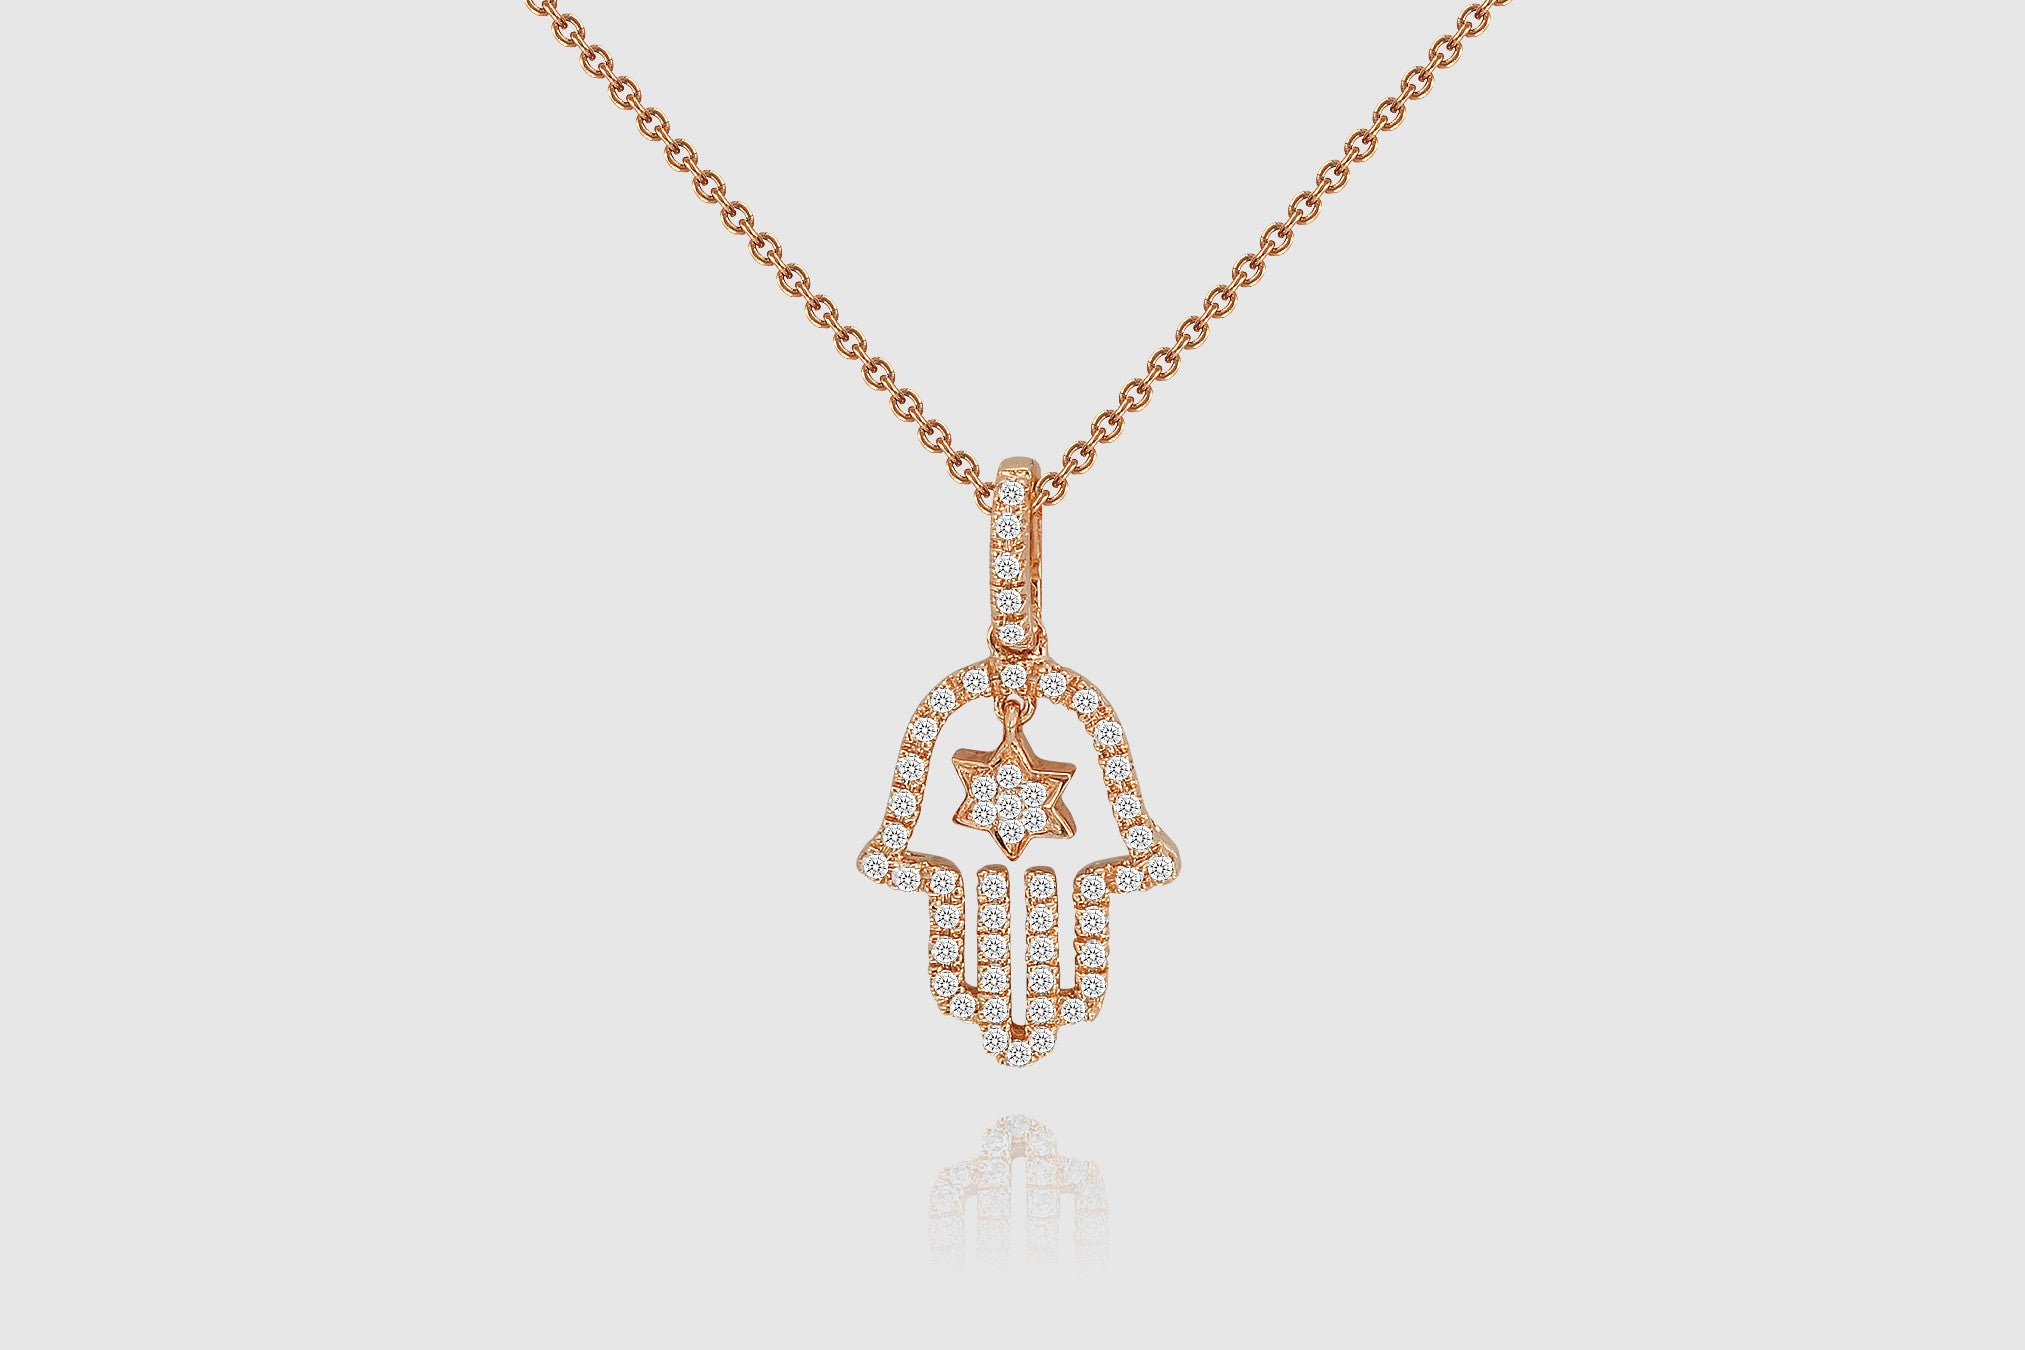 Gold hamsa diamond necklace elbeu 14k gold hamsa diamond necklace elbeu mozeypictures Images